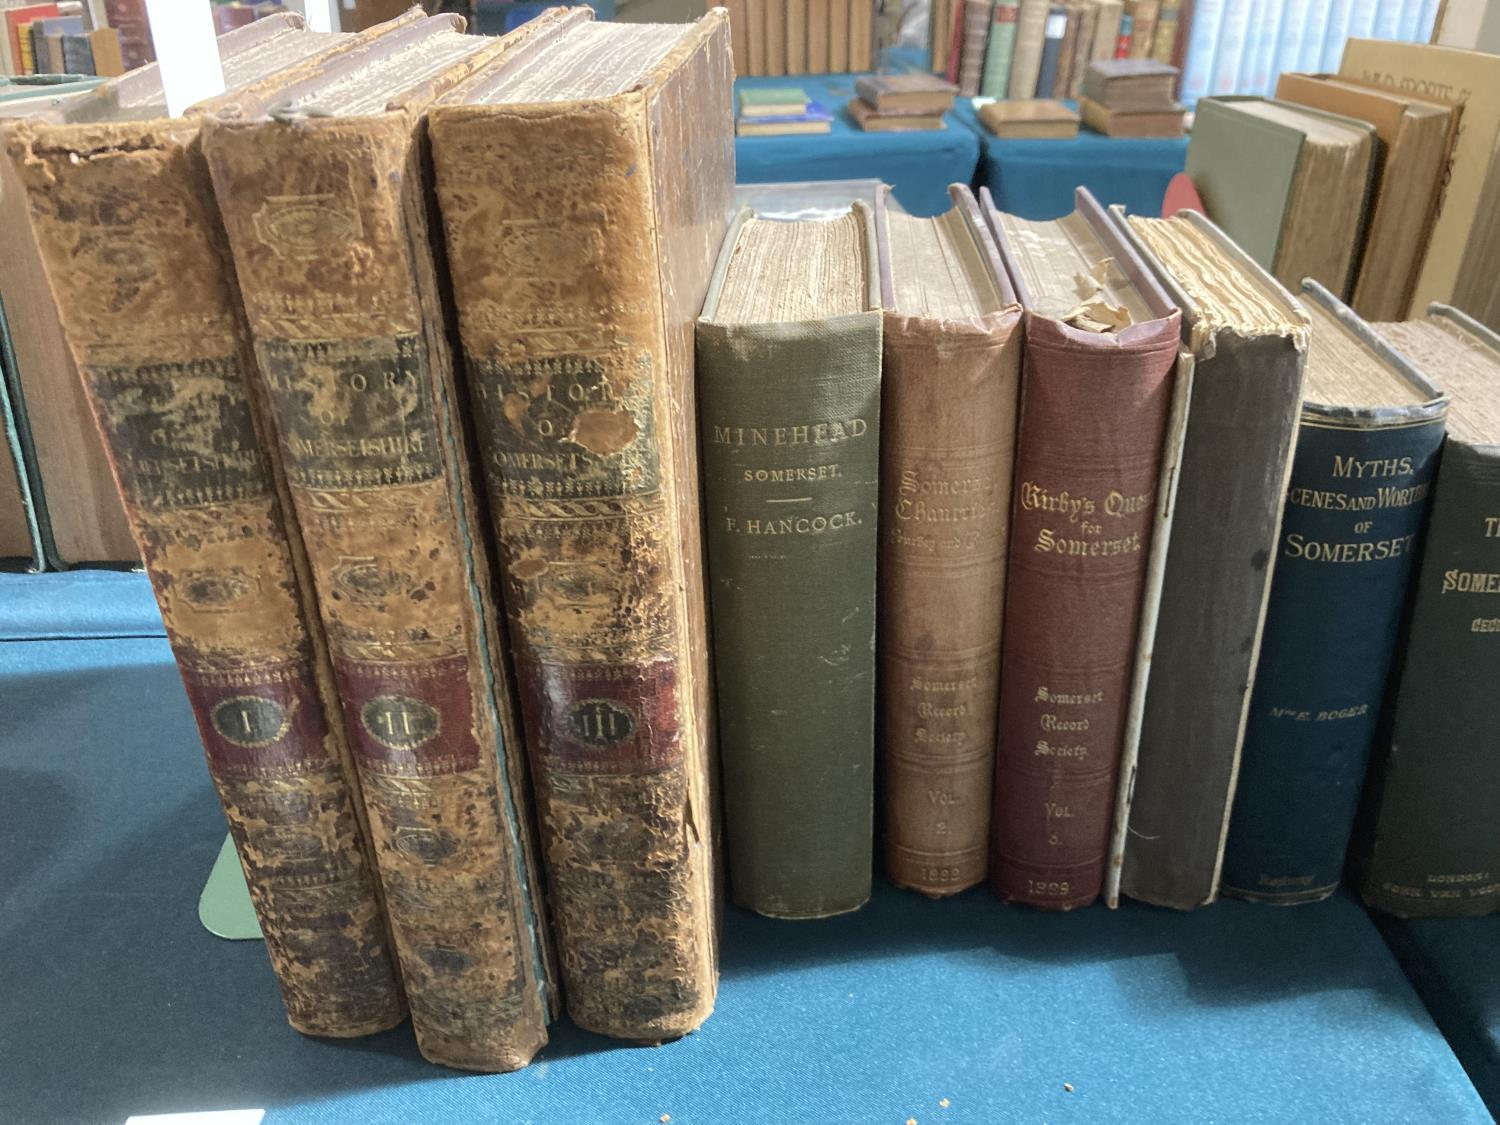 Collinson, John. The History and Antiquities of the County of Somerset, 3 volumes, first edition,